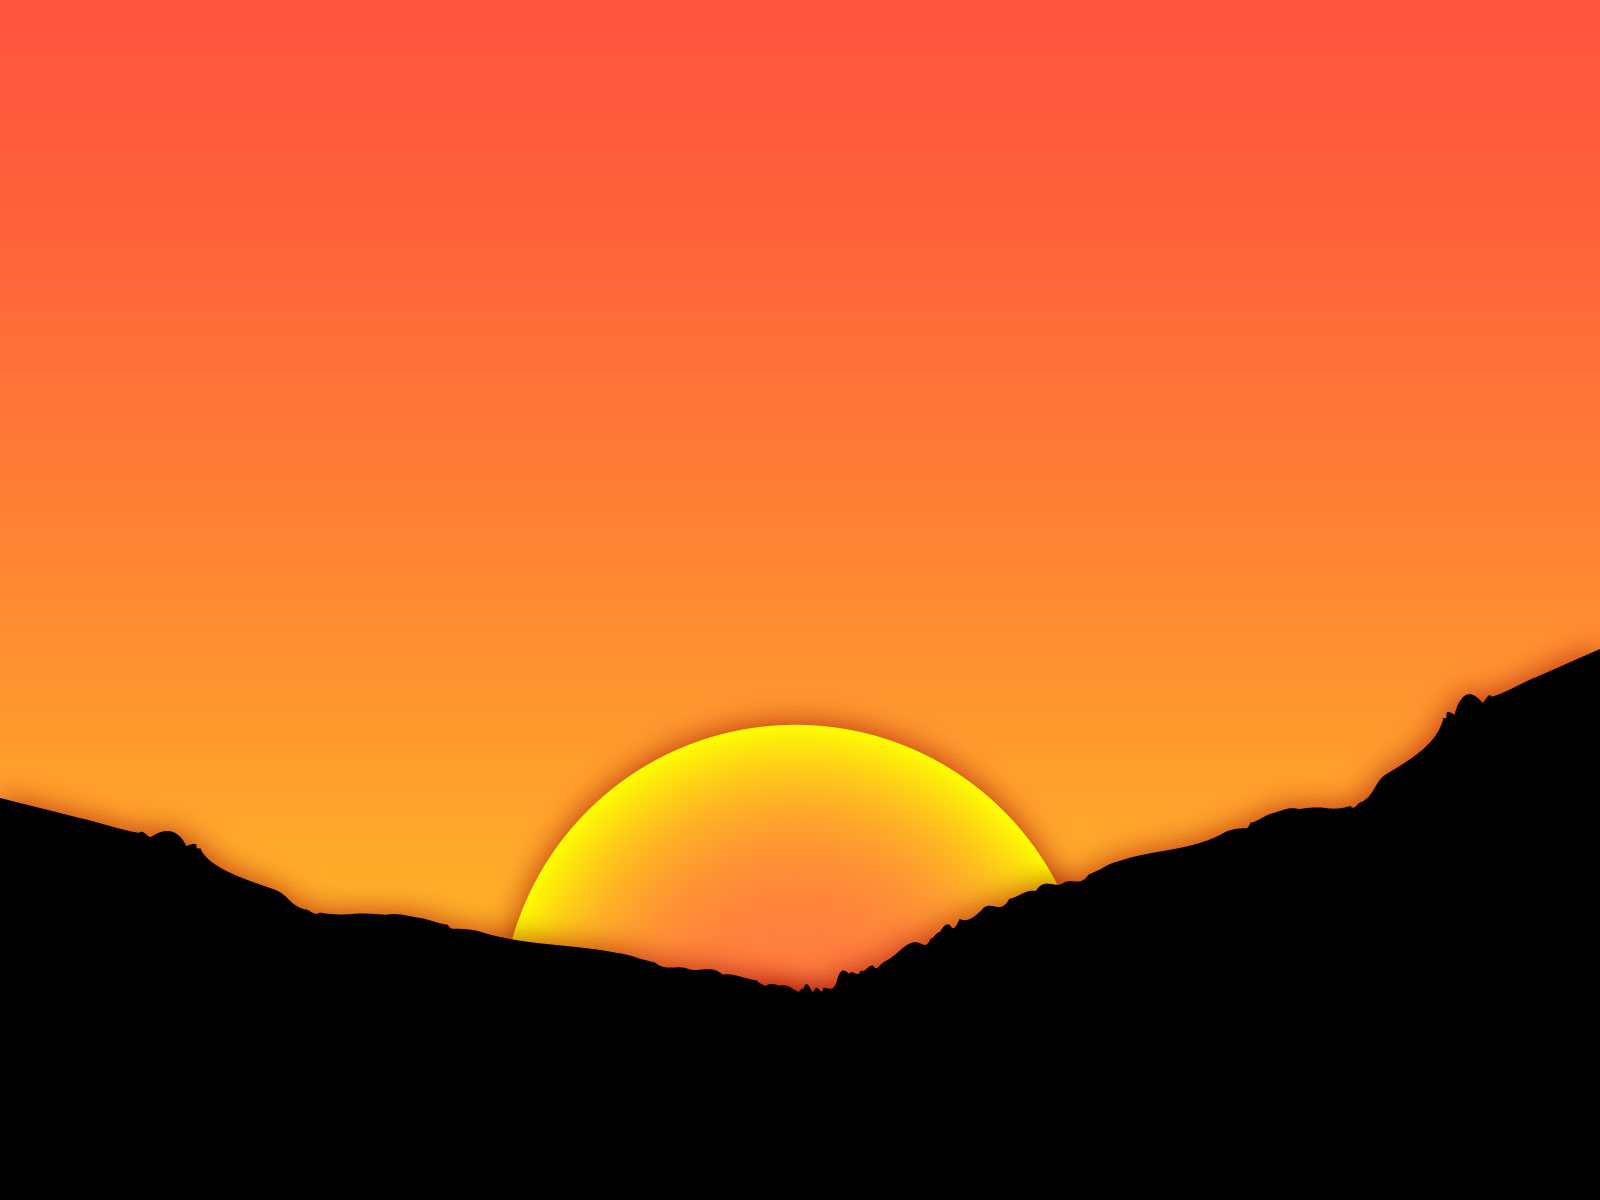 Displaying 20 Images For Evening Sunset Clipart